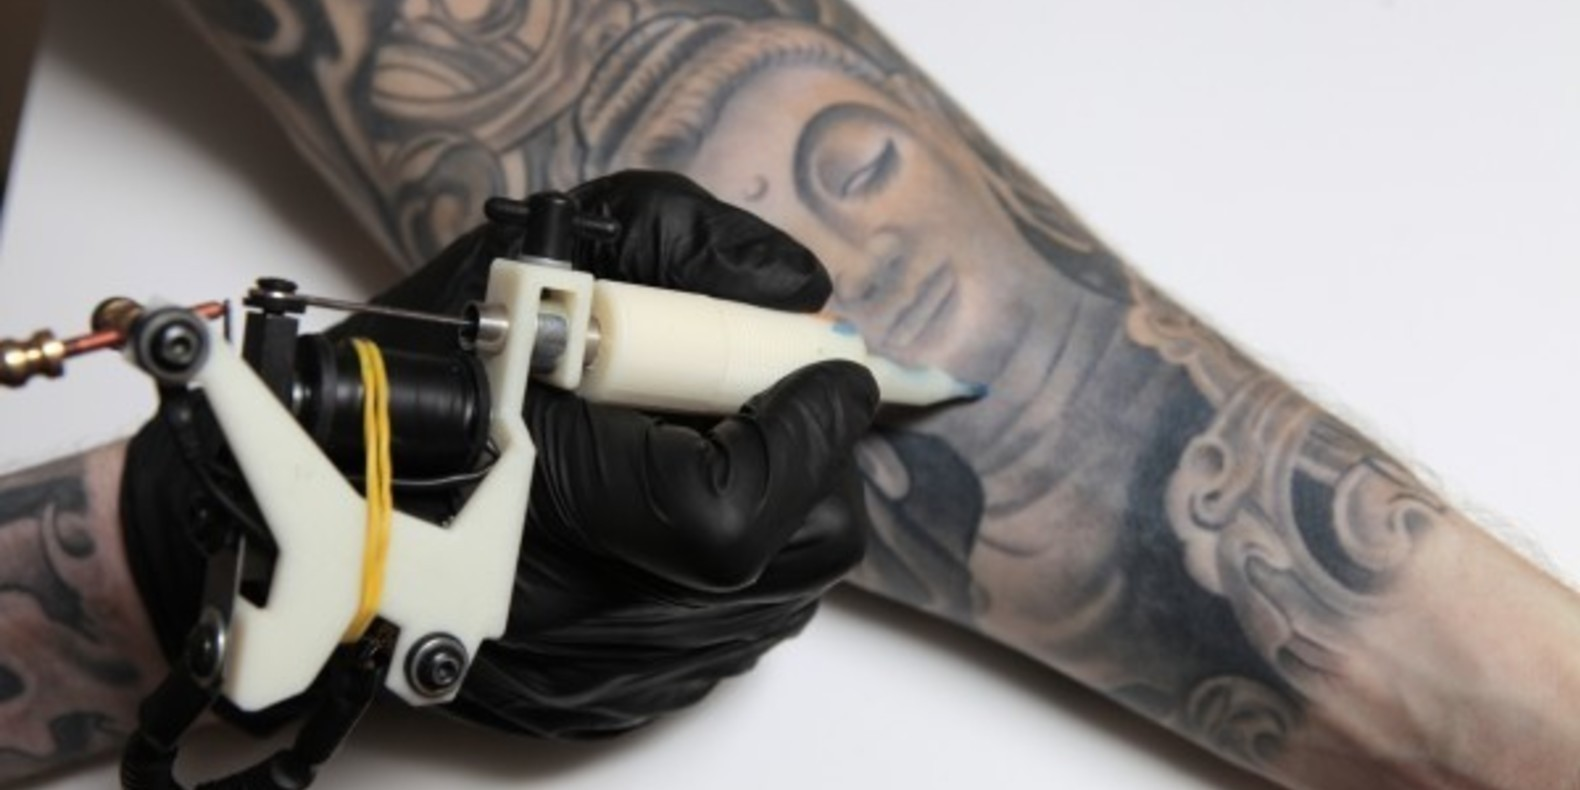 The tattoo machine printed in 3D